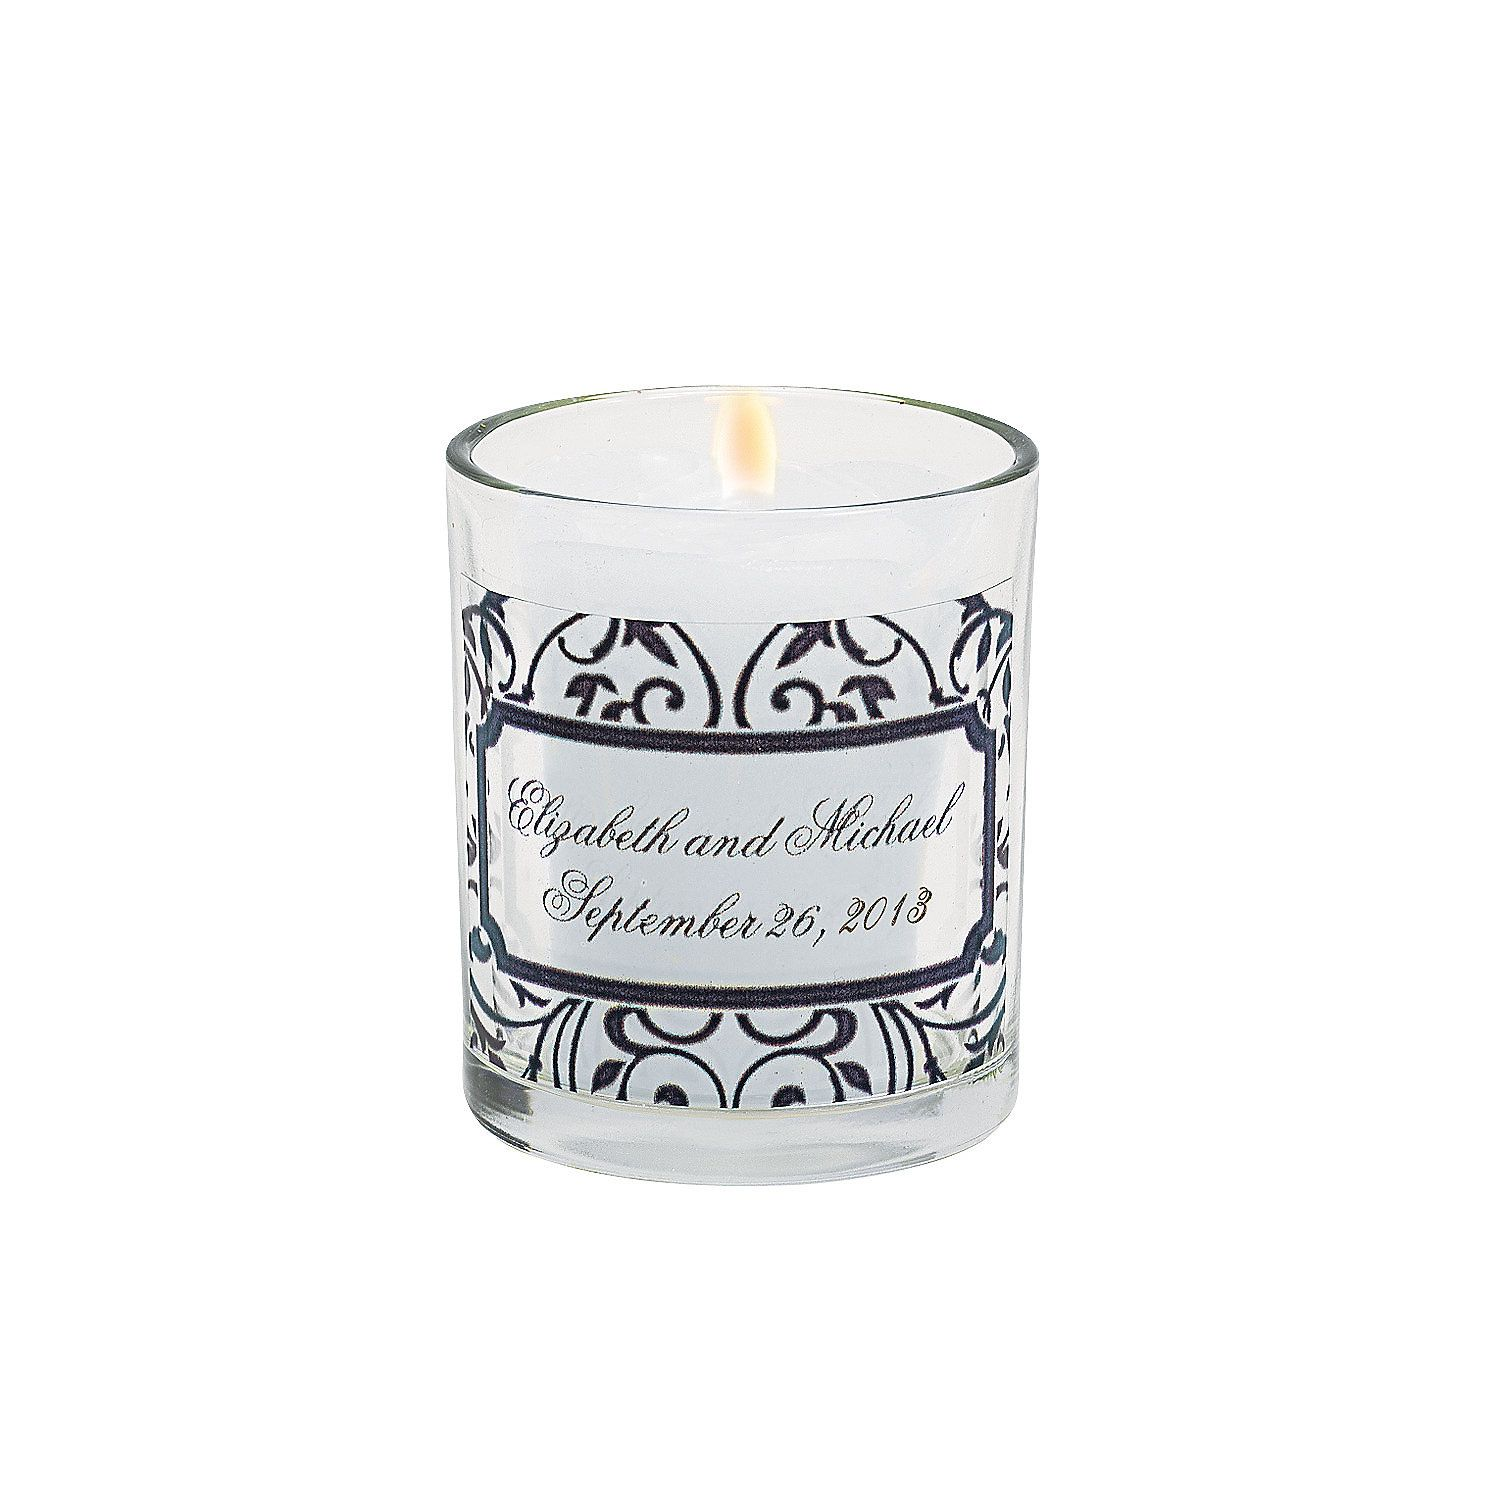 Candles With Gifts Inside Personalized Black And White Votive Candleholders